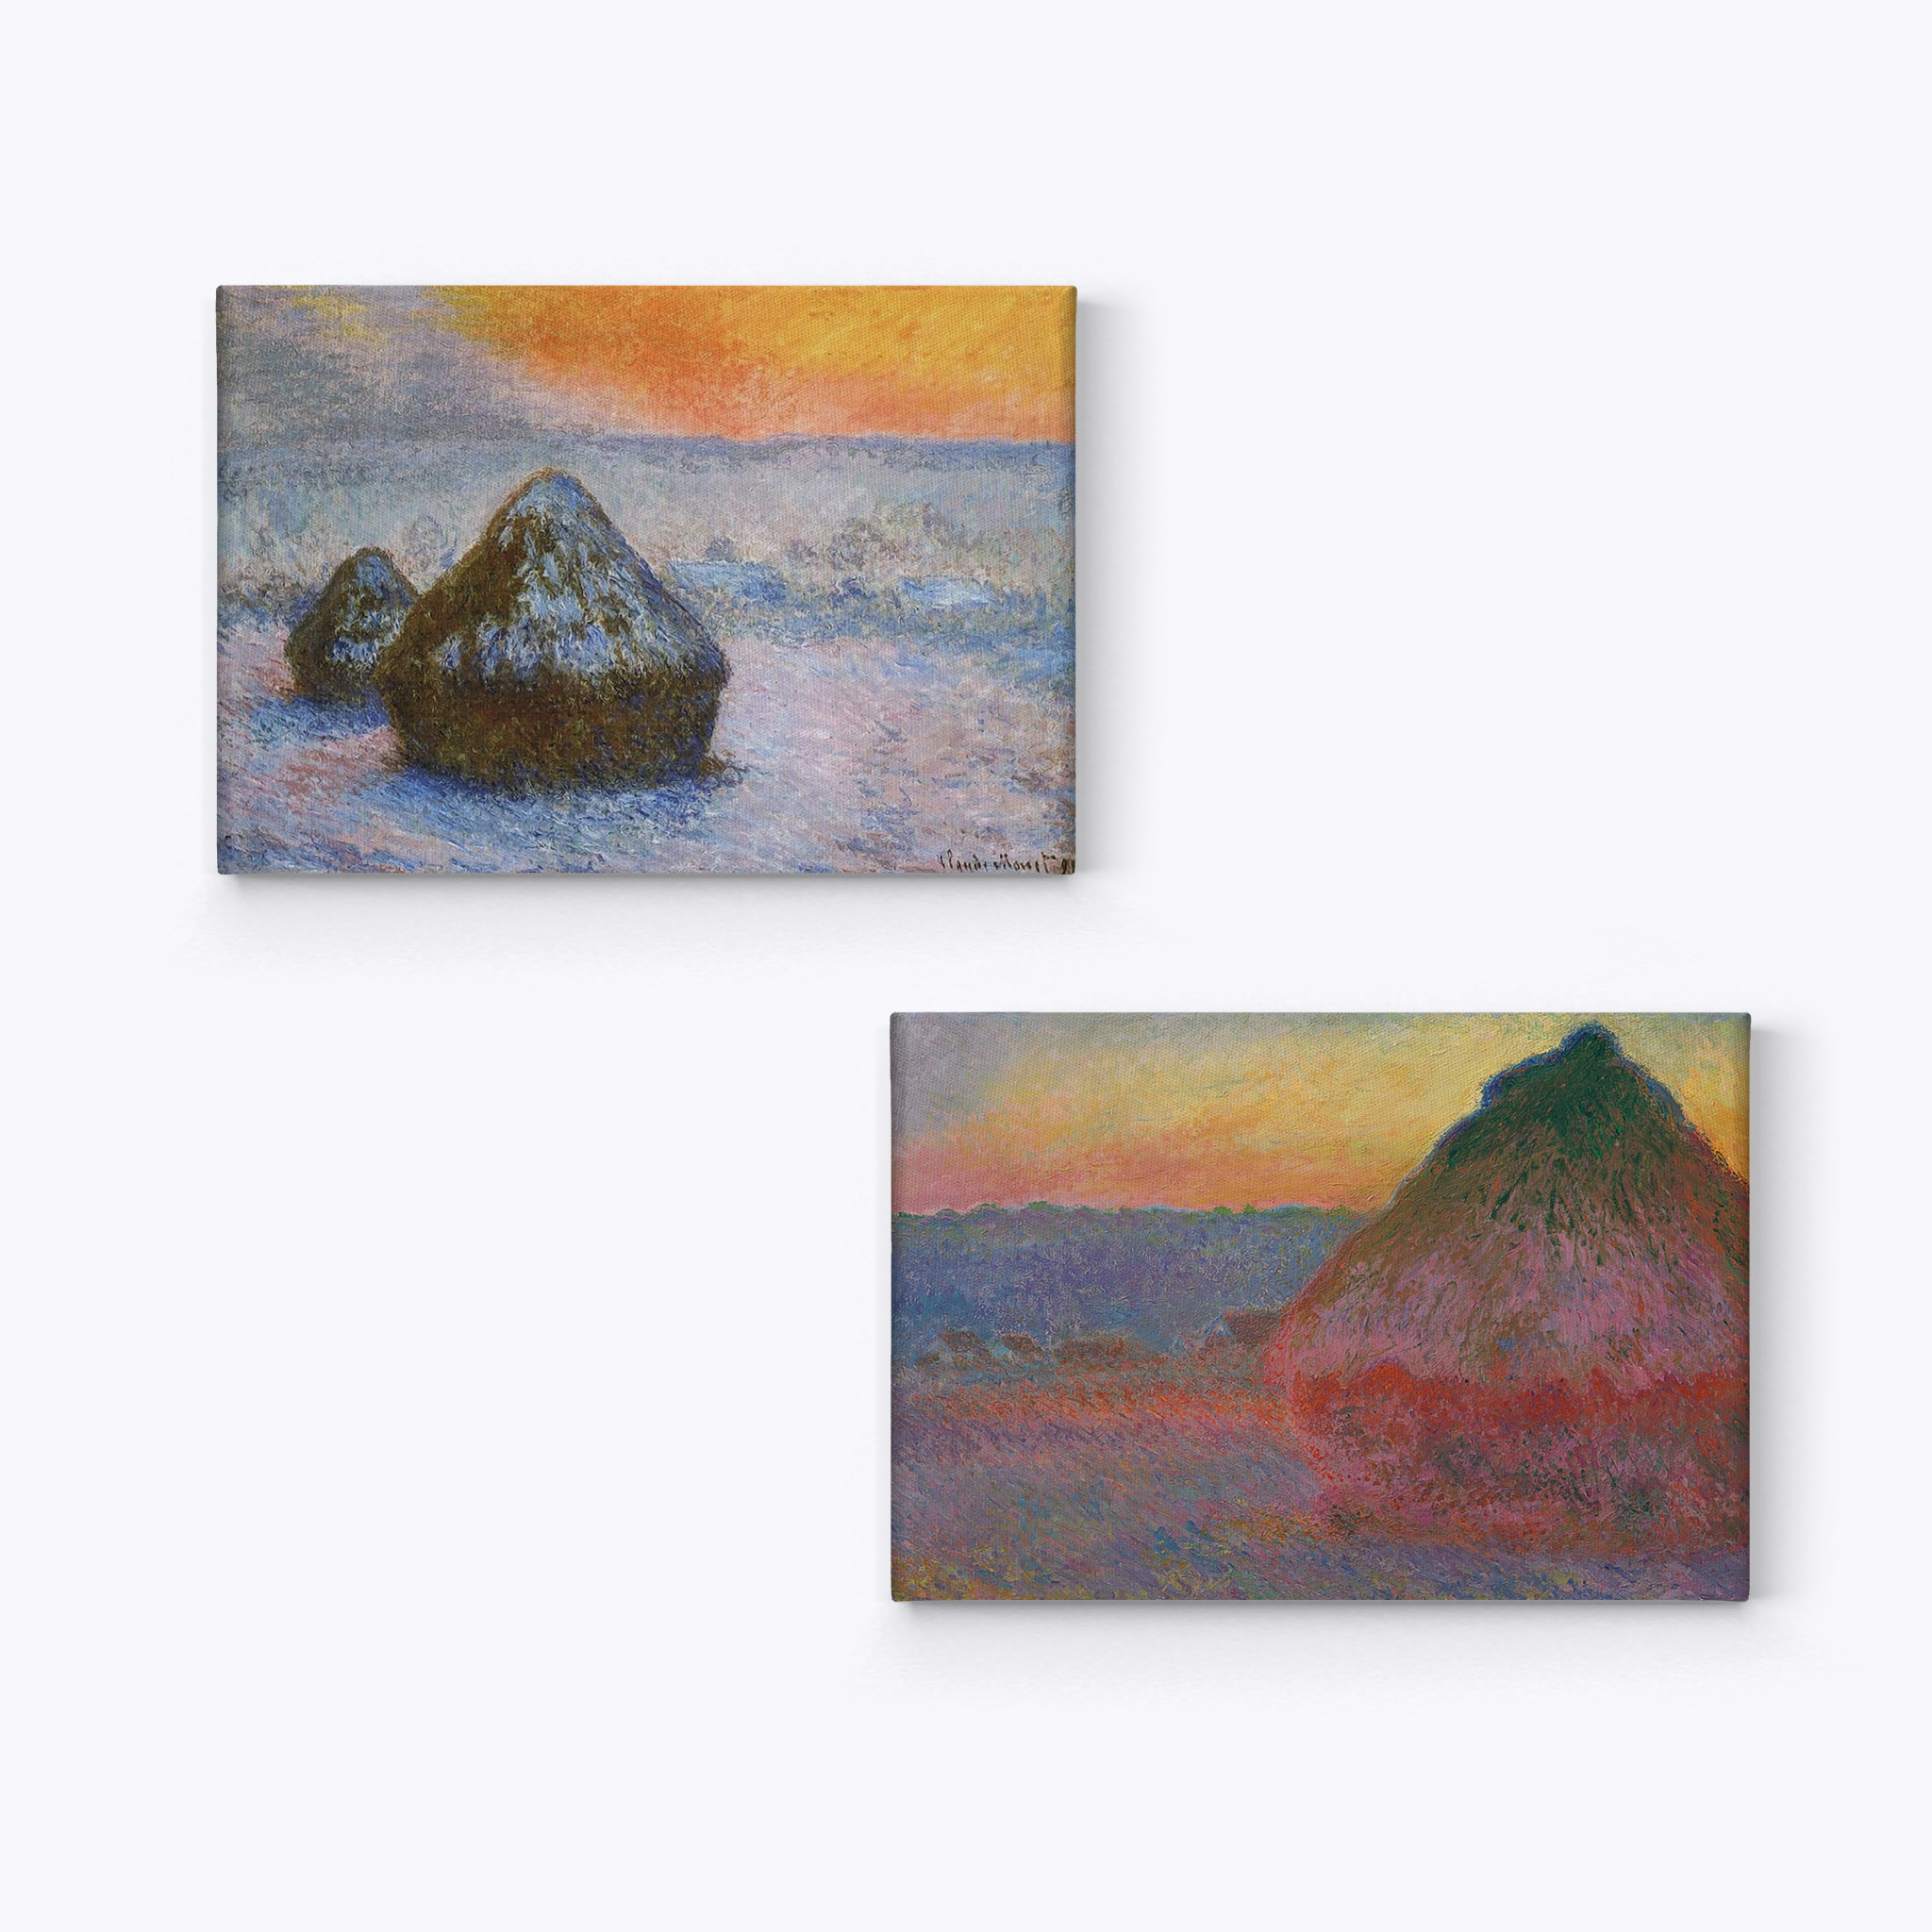 Smile Art Design Haystacks Series Wheatstacks Claude Monet 2 Piece Set Canvas Wall Art Canvas Print Famous Art Painting Reproduction Oil Paint Modern Art Home Decor Ready To Hang Made In Usa